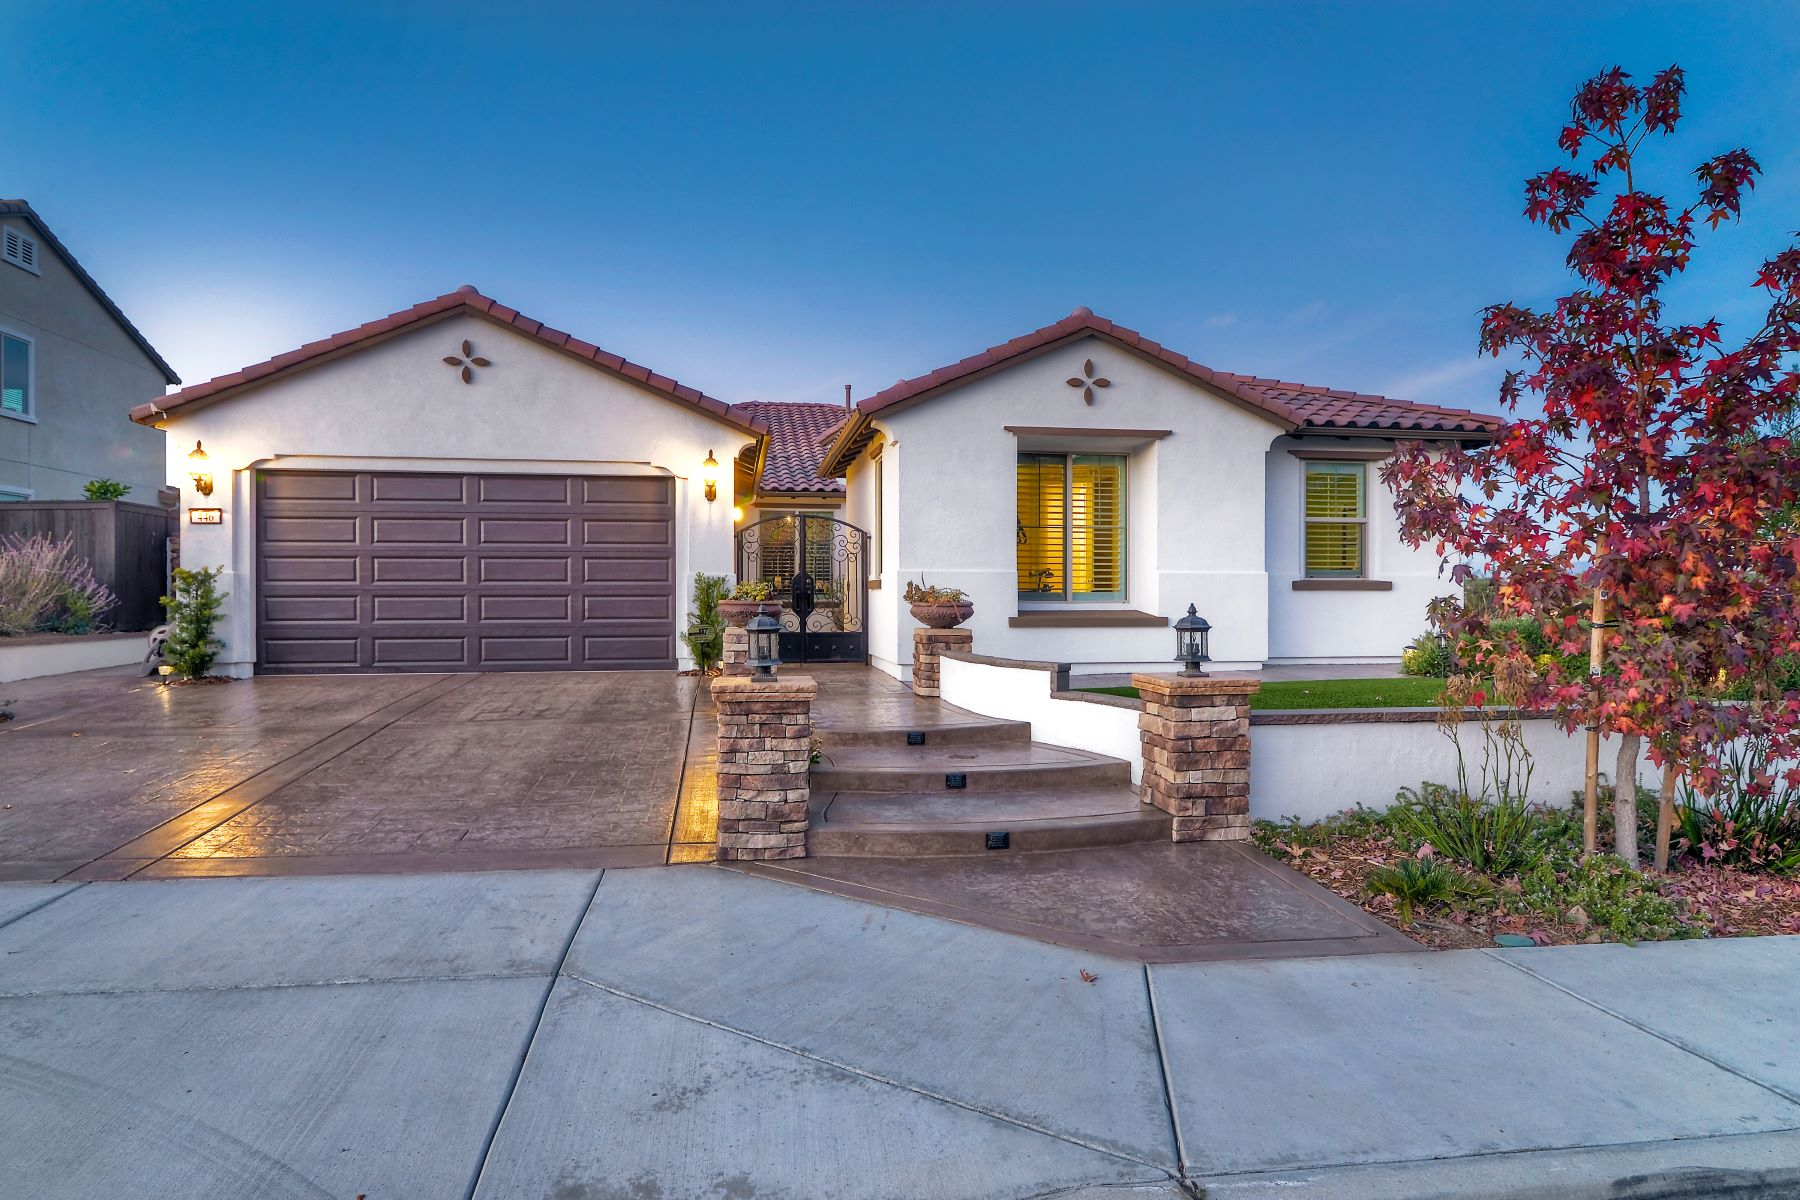 Single Family Home for Active at 446 Adobe Estates Drive 446 Adobe Estates Drive Vista, California 92083 United States